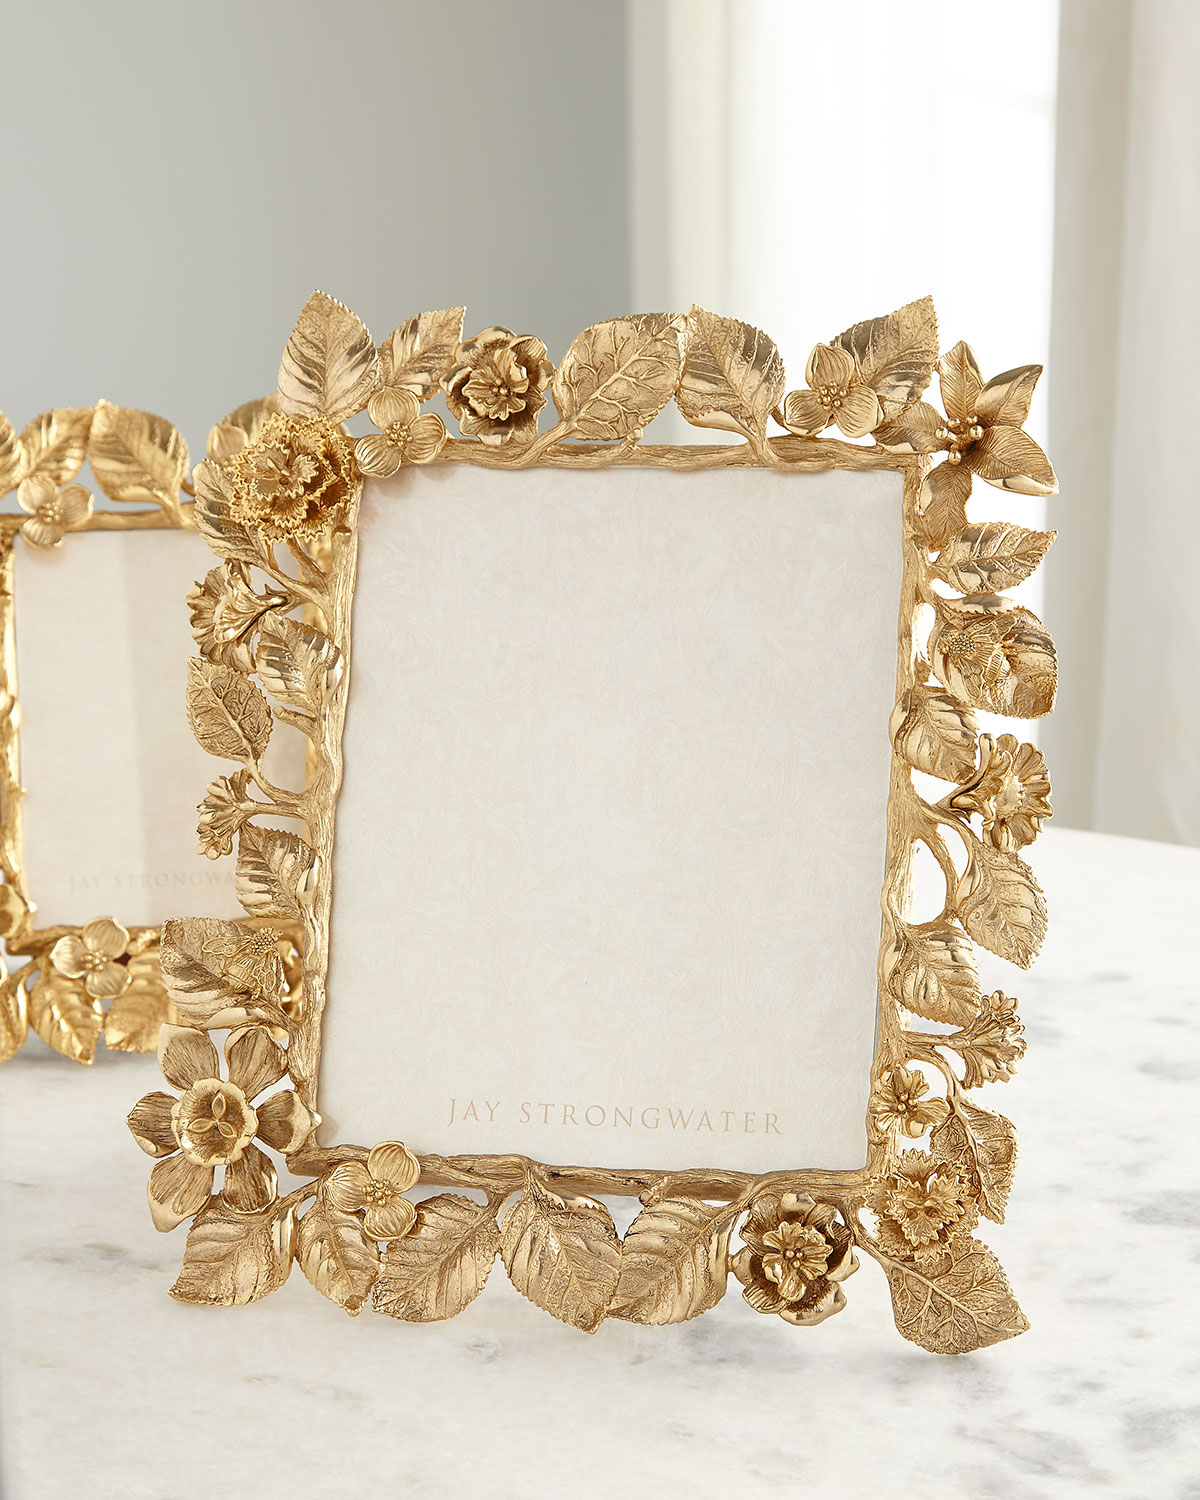 """Jay Strongwater DUTCH FLORAL FRAME COMPOSITION, 8"""" X 10"""""""